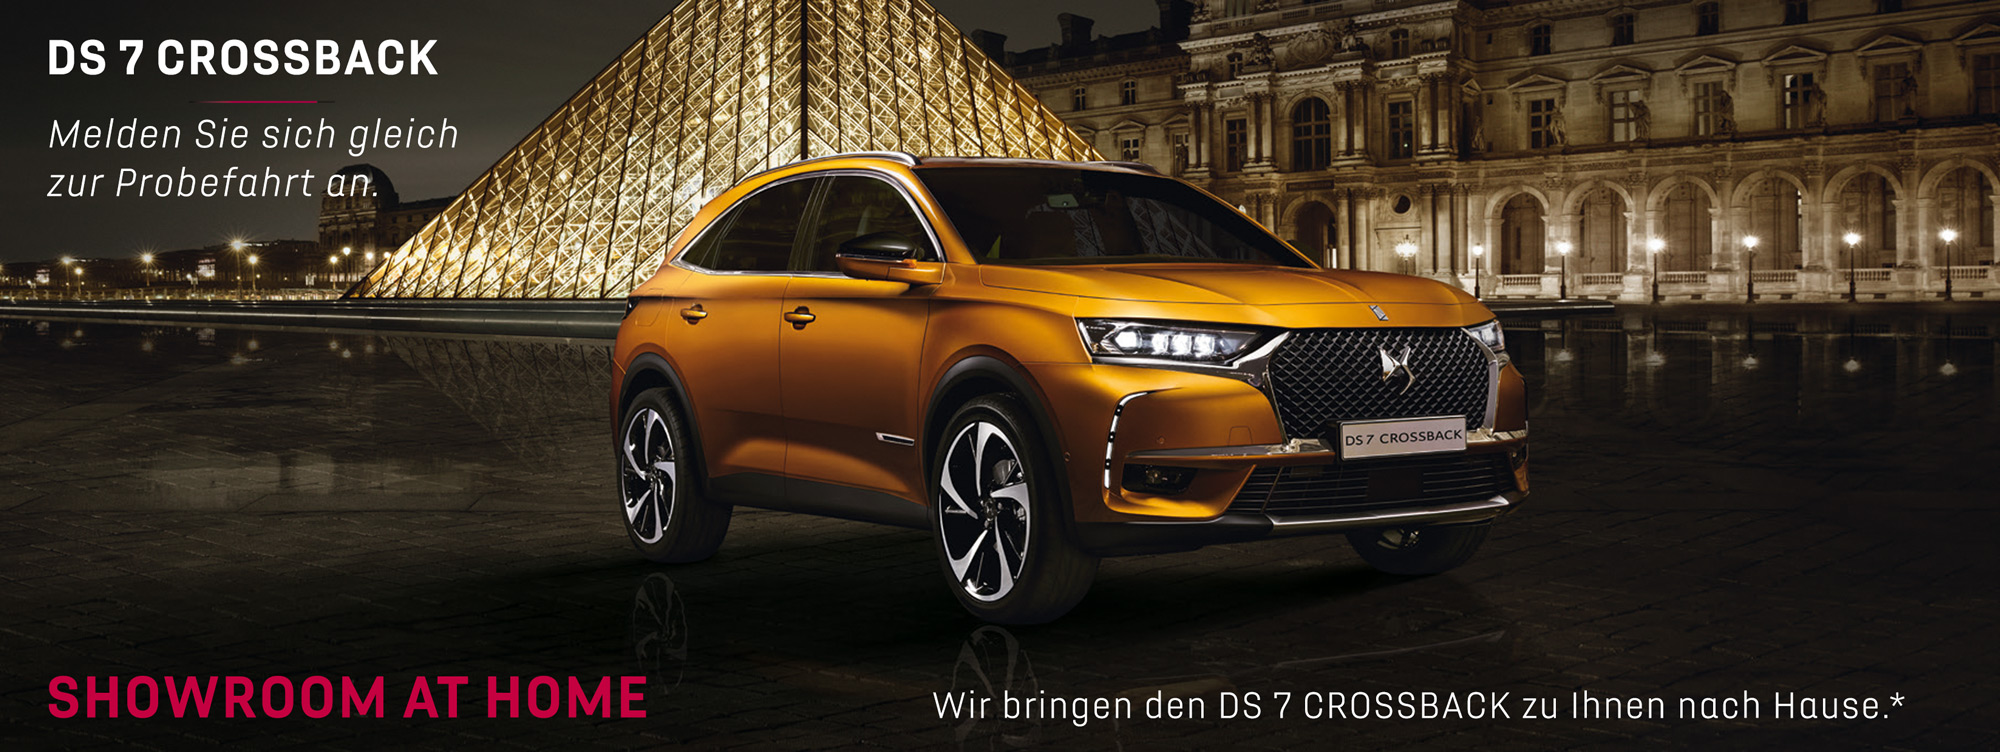 ds7_crossback.jpg